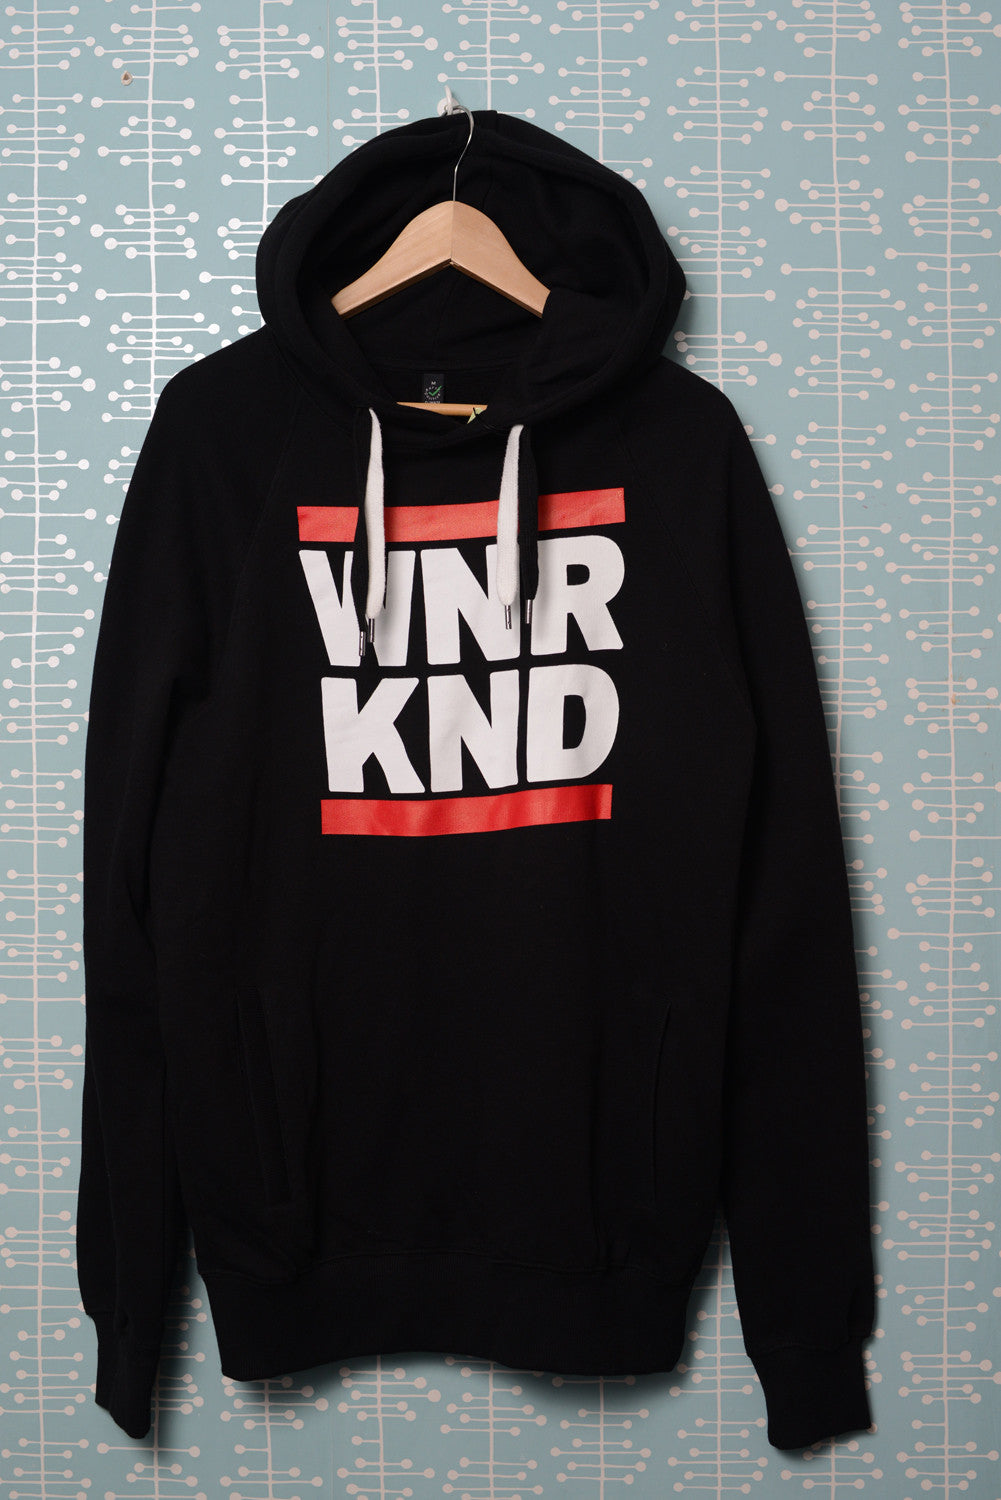 WNRKND Hoody With Side Pockets black